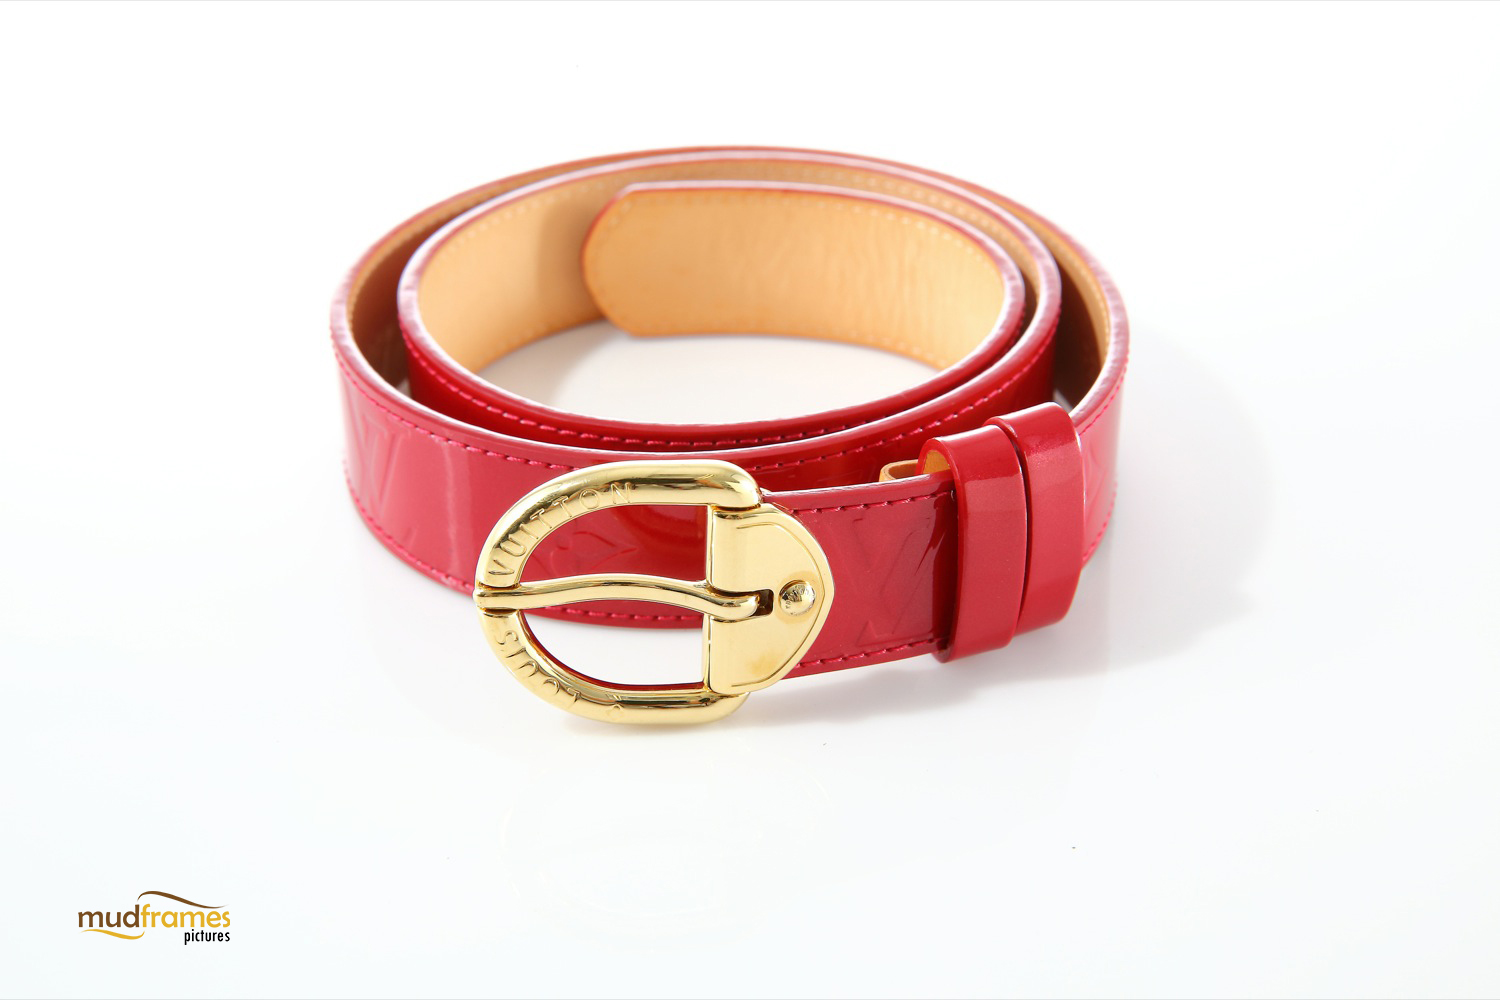 Red Louis Vuitton belt on white background